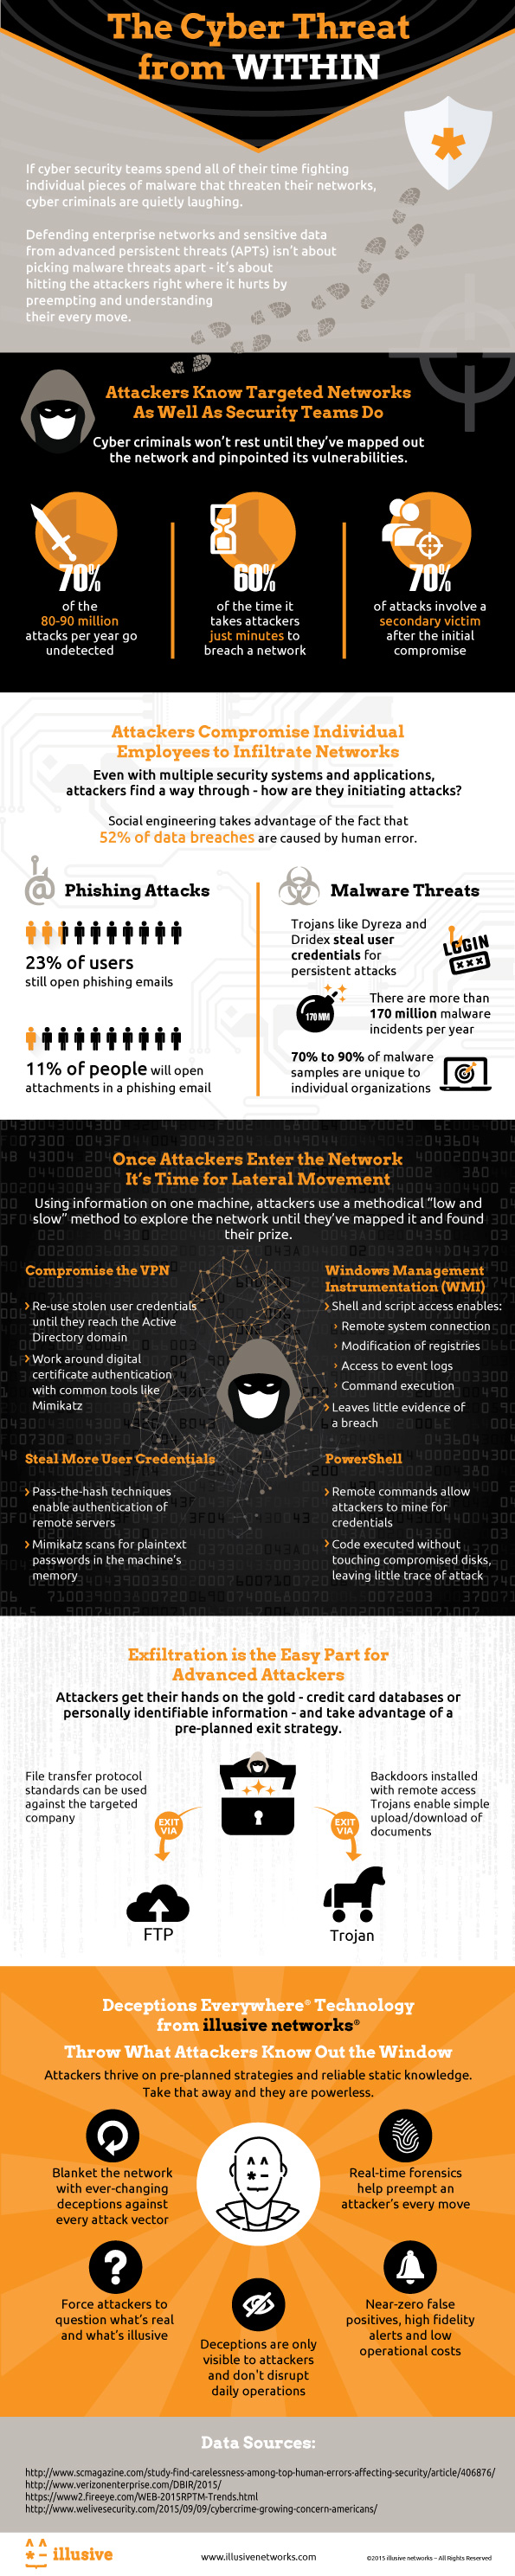 Cyber_Threat_infographic